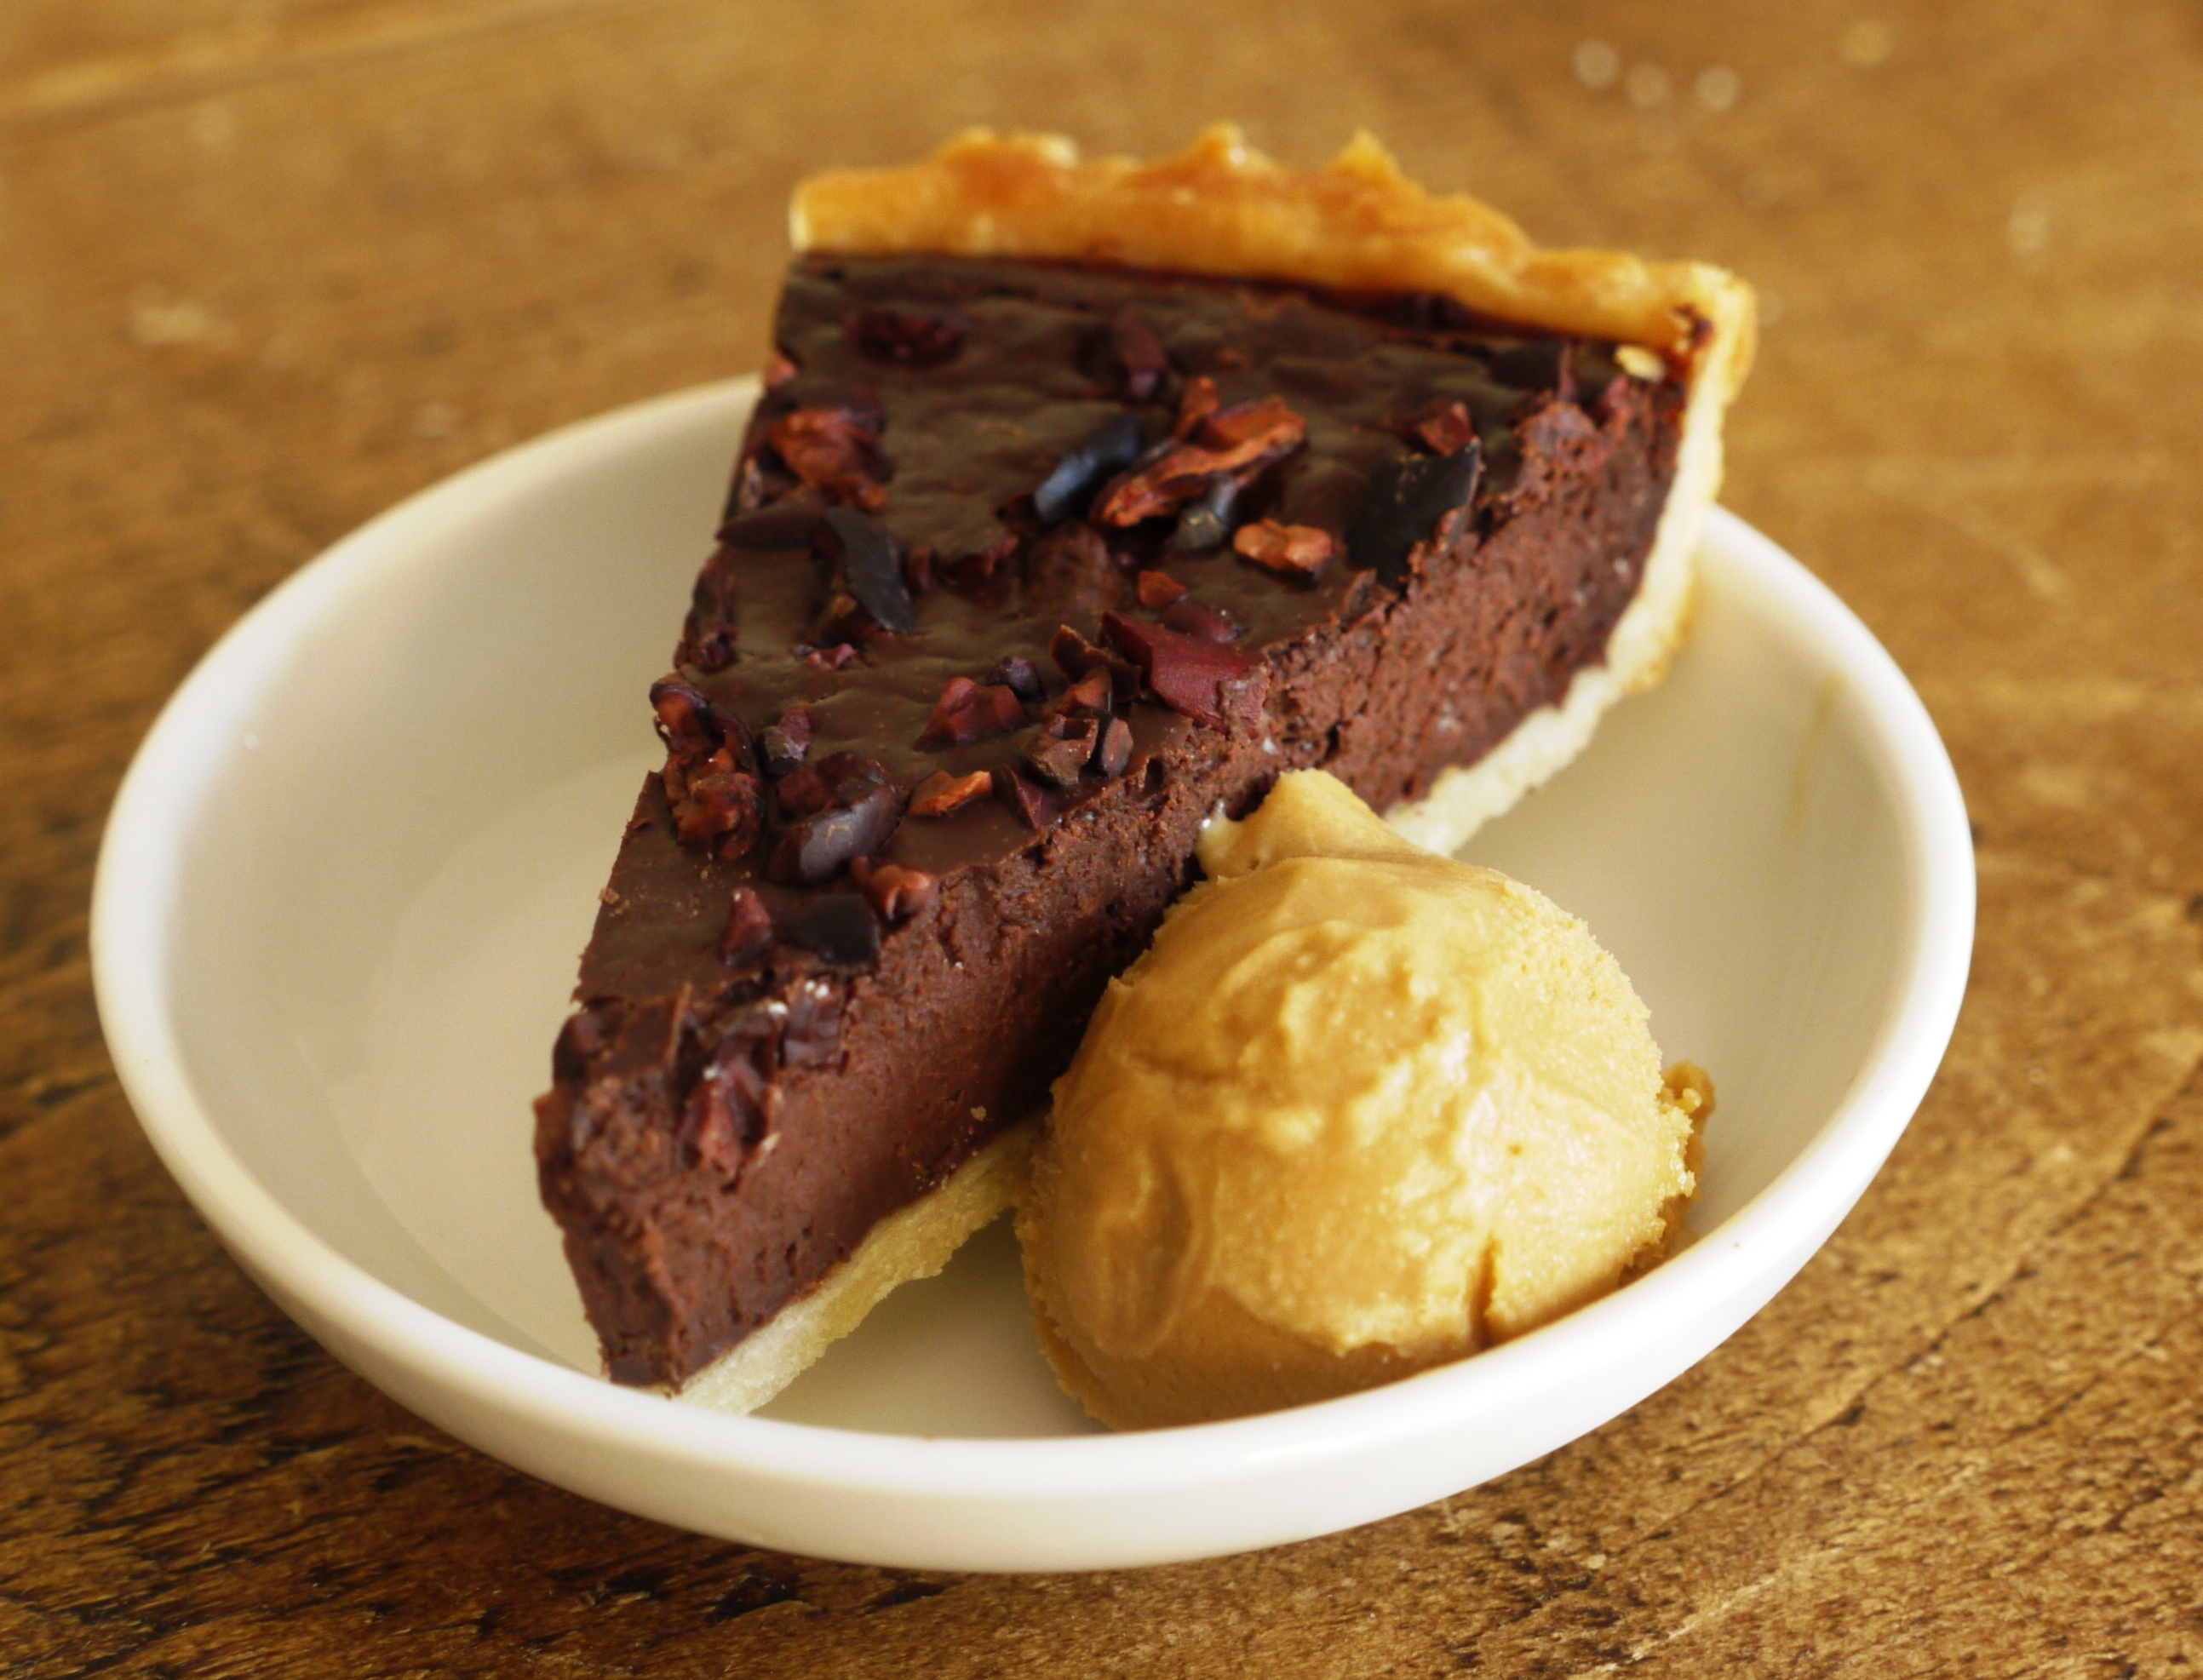 chocolate_tart_salted_caramel_ice_cream